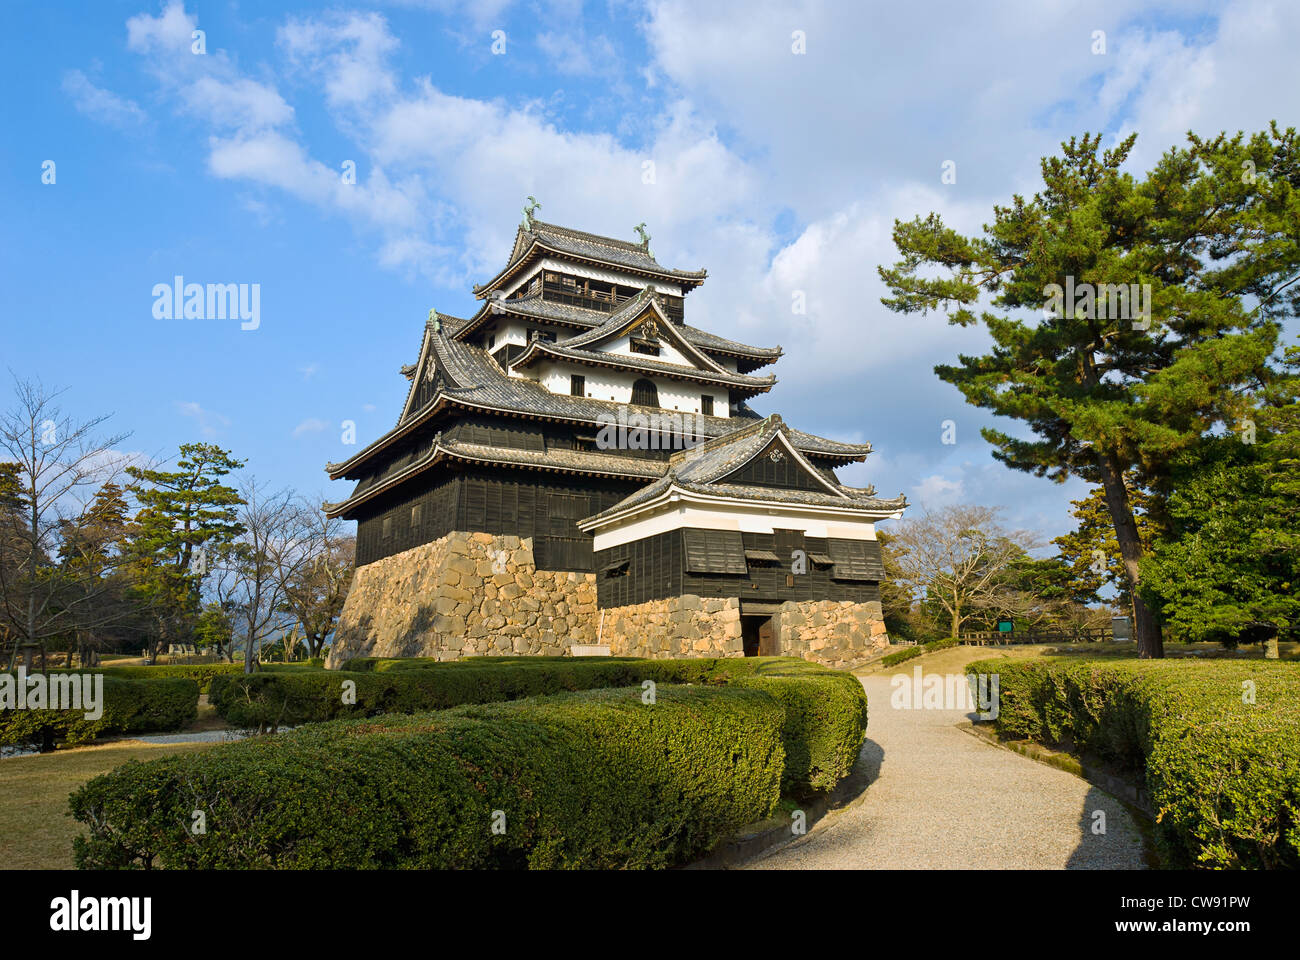 Matsue Castle, Shimane Prefecture, Japan. Medieval Castle made of wood, c. 1622. - Stock Image